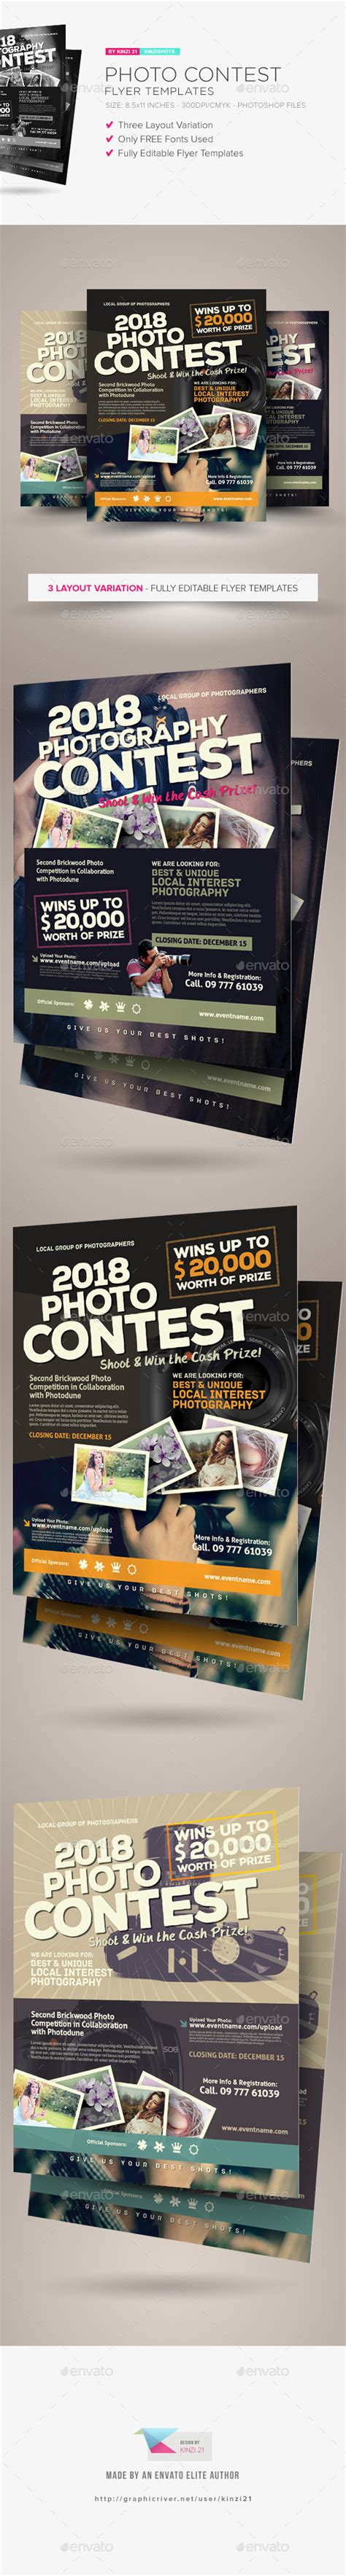 Photo Contest Flyer Template by Best Photo Contest Flyers 187 Tinkytyler Org Stock